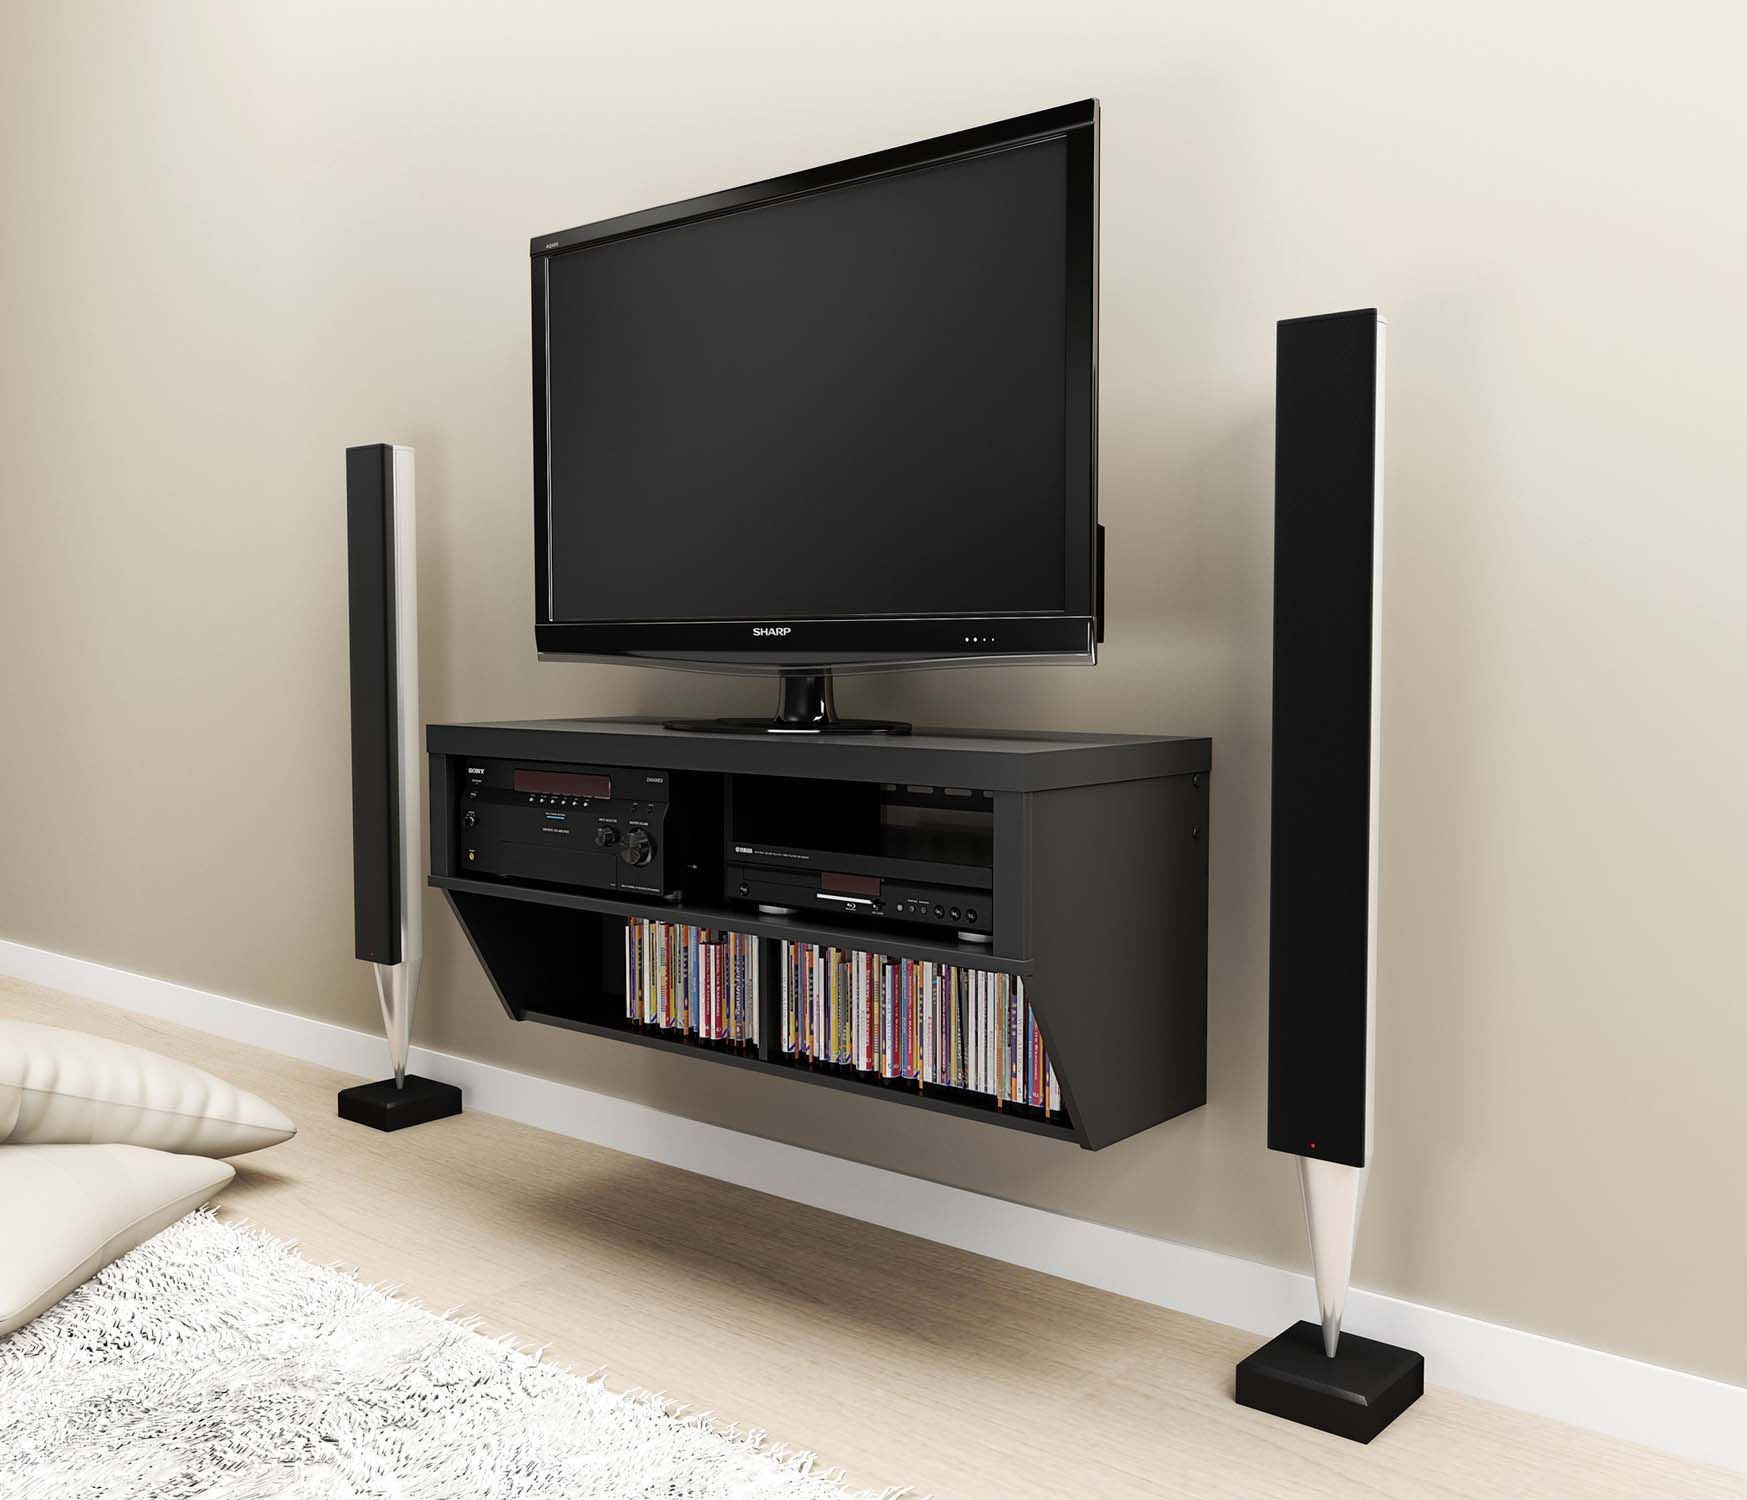 Furniture Interior Wall Mounted Black Painted Wooden Tv Cabinet With Dvd Storage Racks Shelves